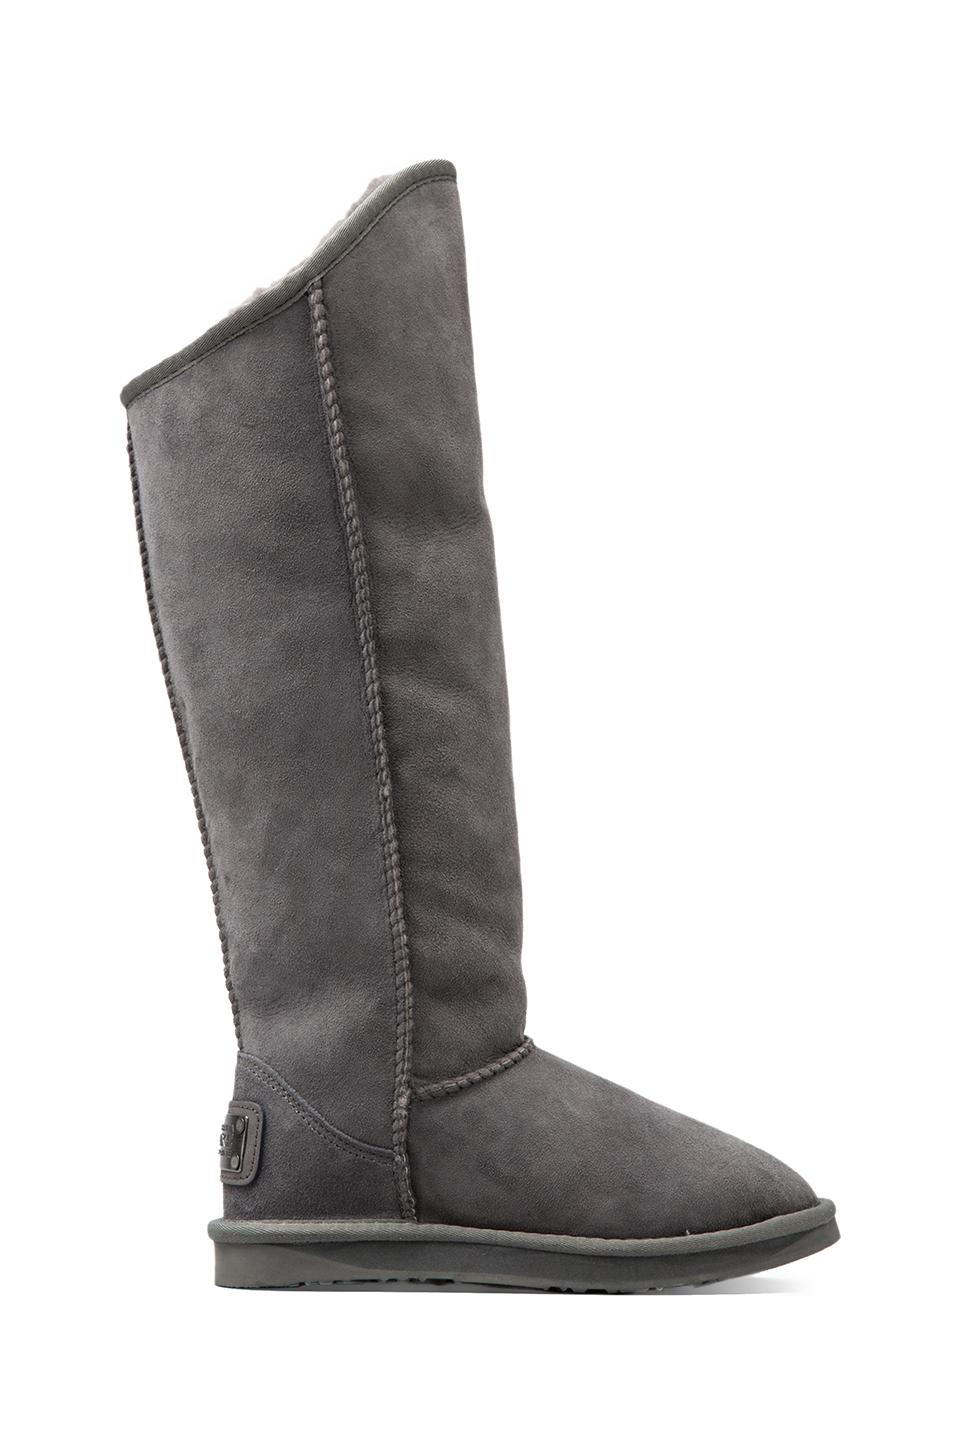 Australia Luxe Collective Cosy X-Tall Boot with Sheep Shearling in Grey